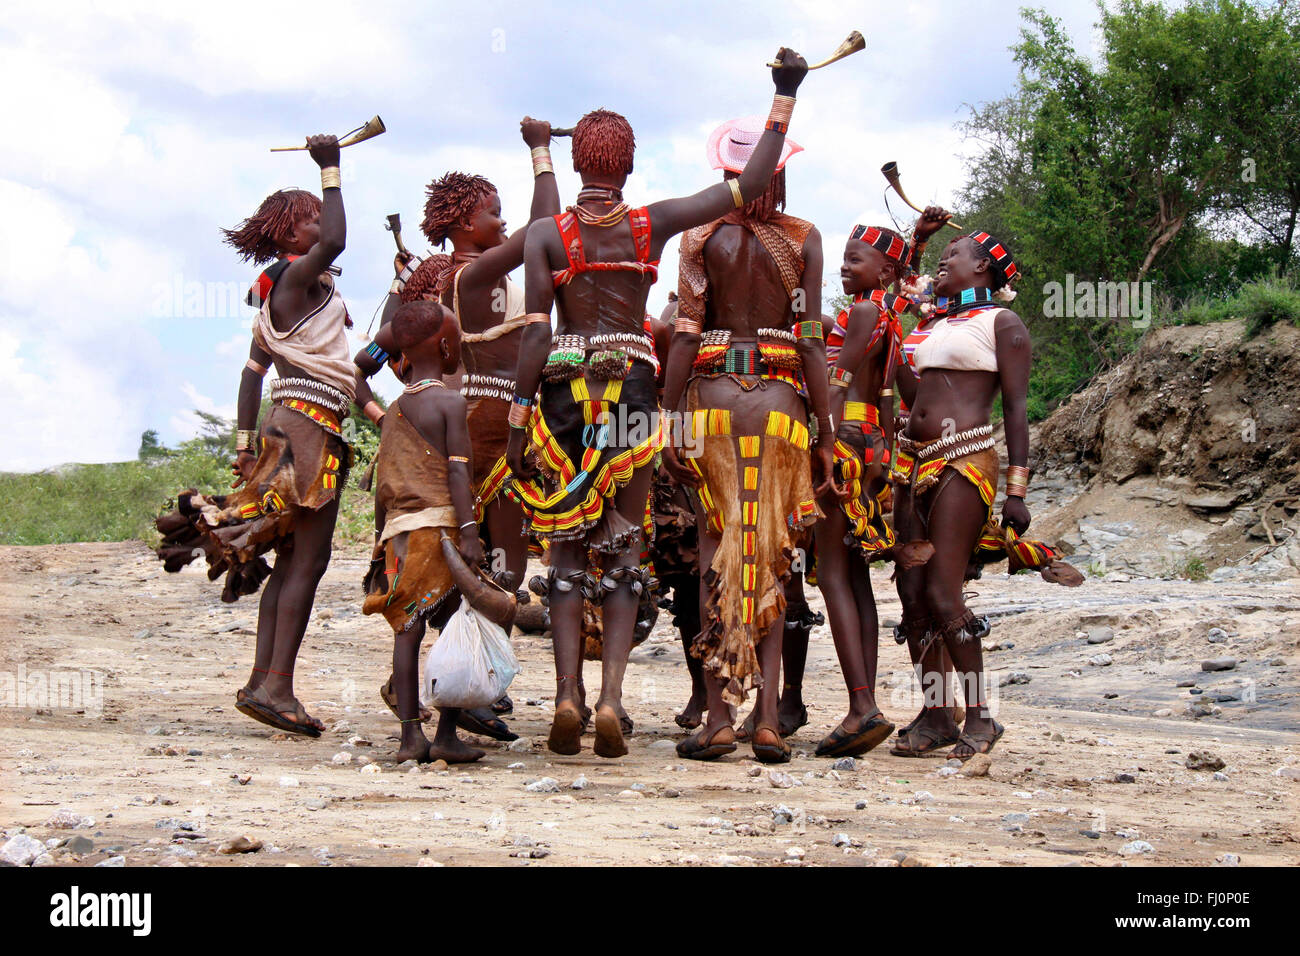 Hamer women are dancing during celebrations by the Hamer tribes in Ethiopia, Omo valley - Stock Image